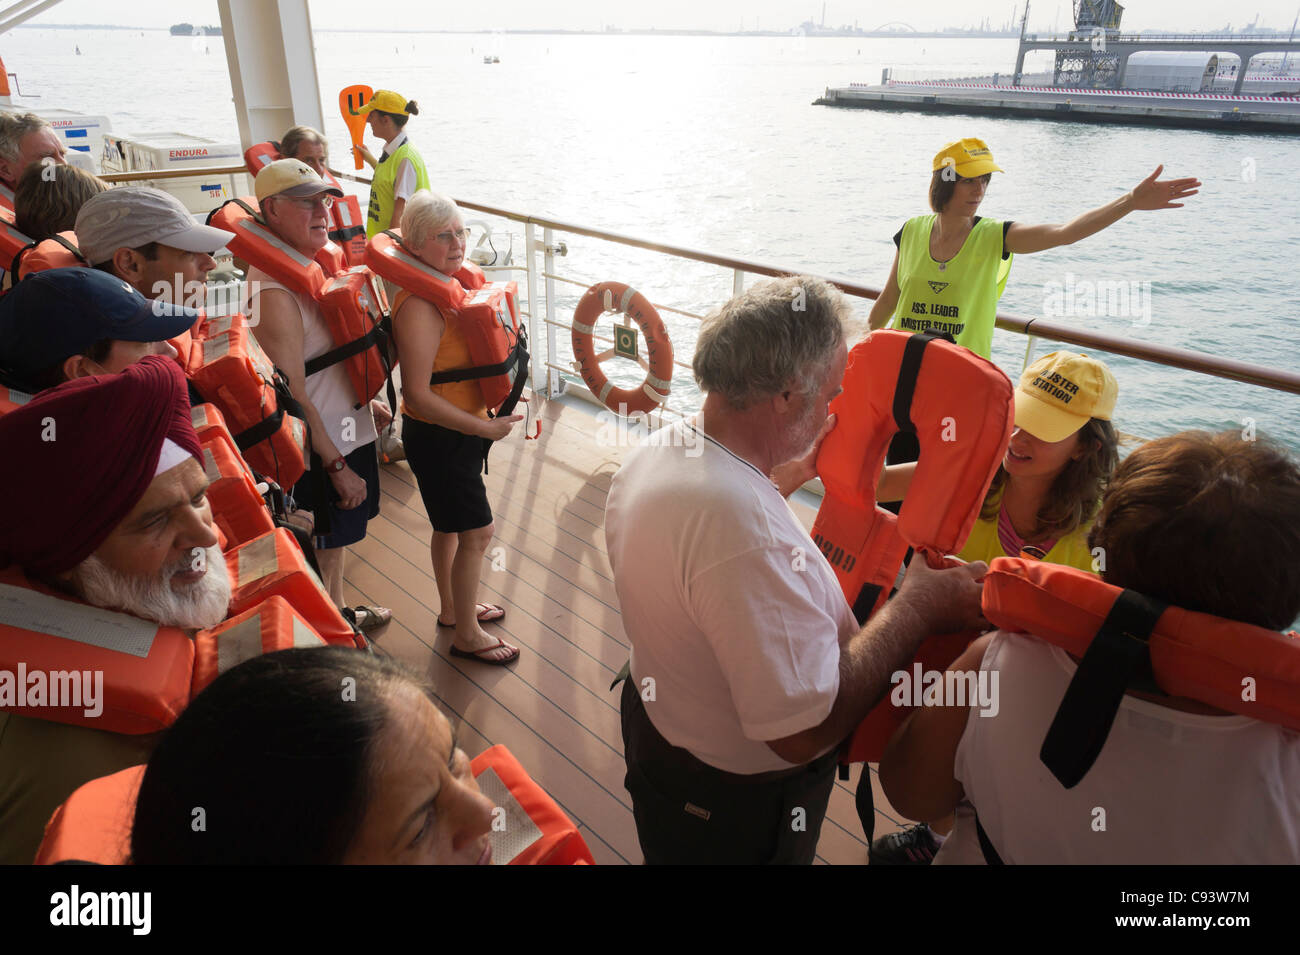 MSC Armonia cruise ship - Life Jacket Safety Drill on first